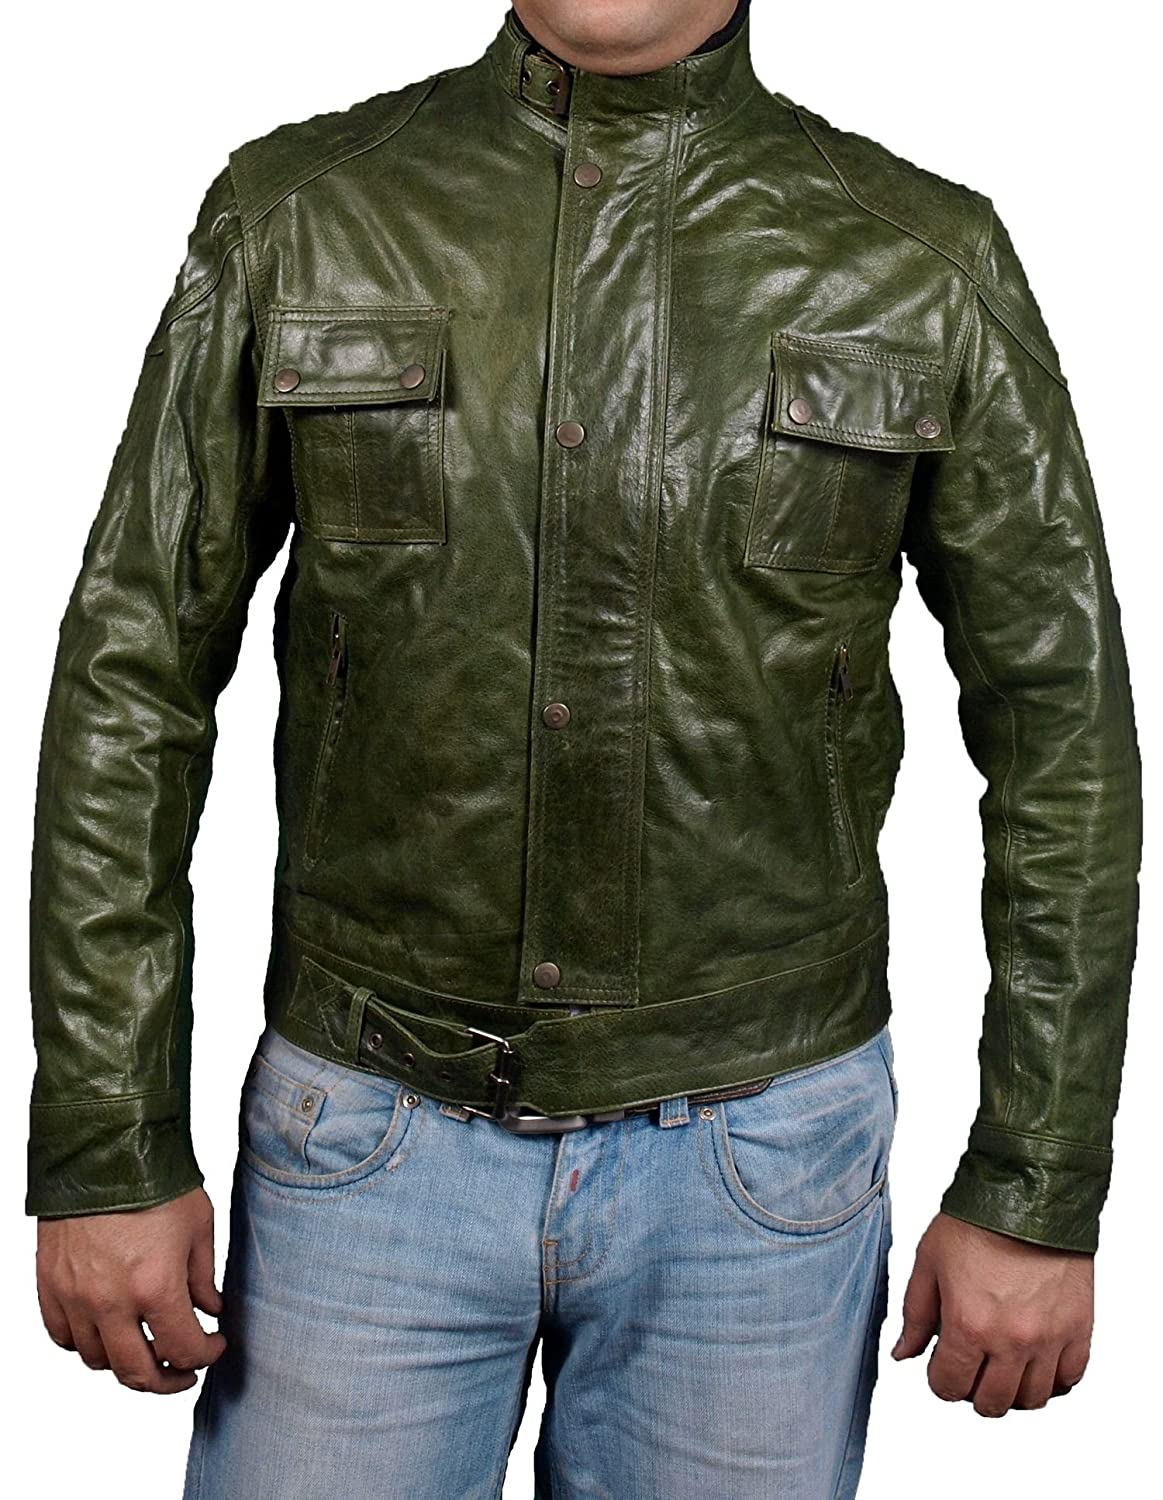 Men's WANTED Leather Jacket